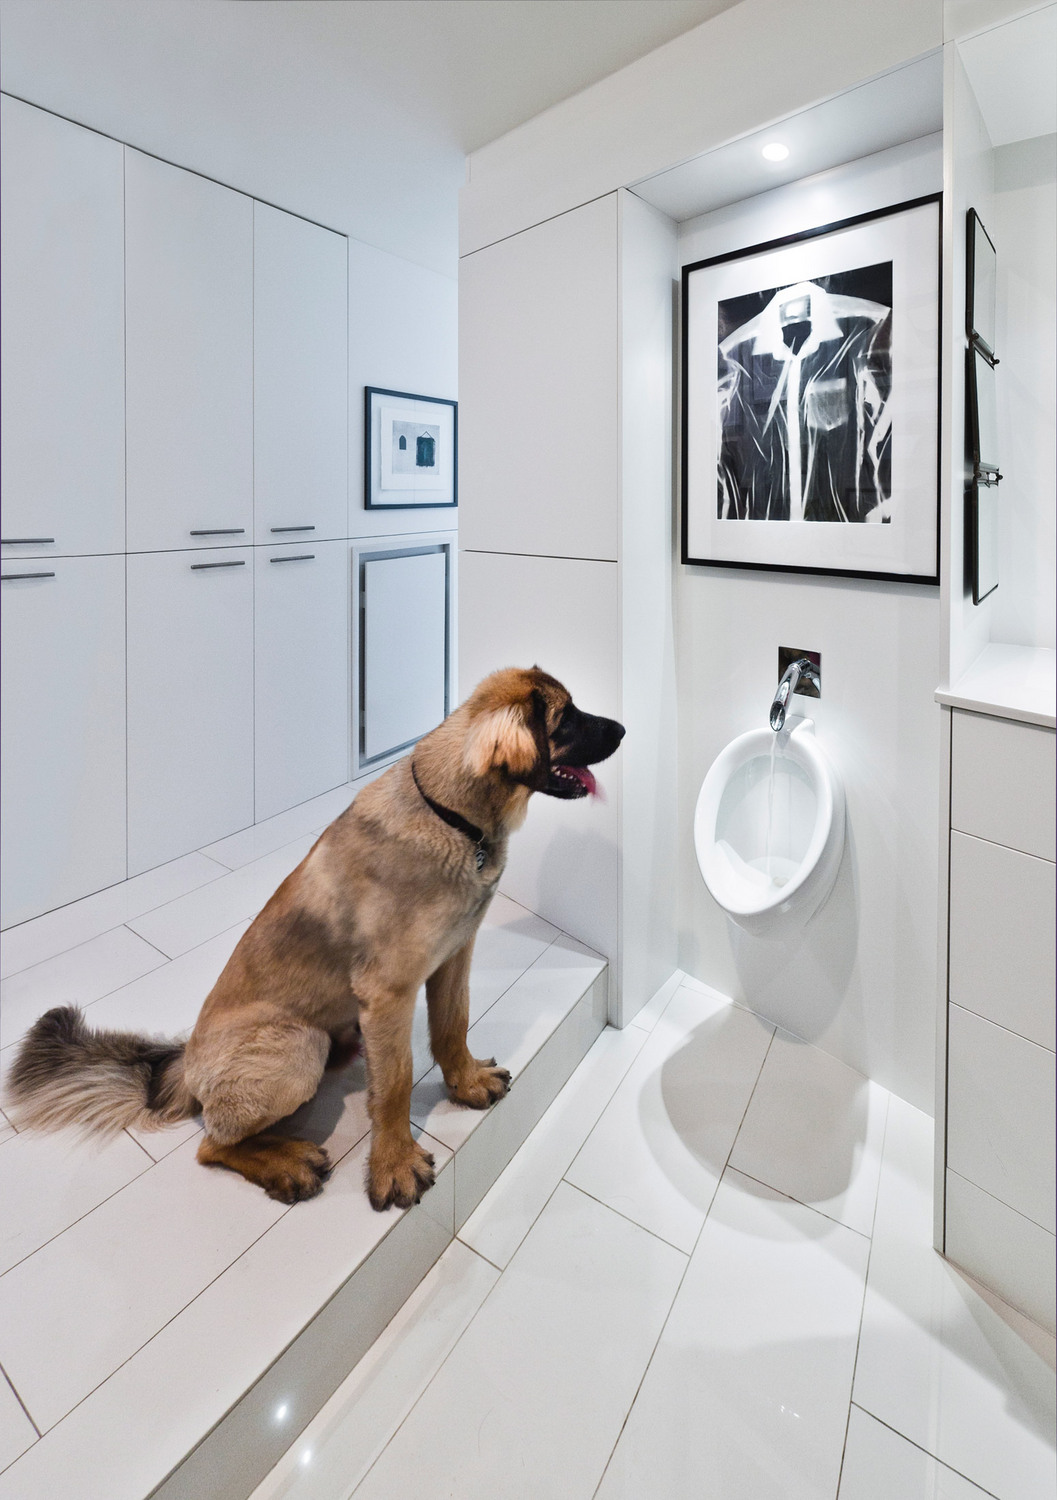 A renovated condo at  324 Laurier Ave  by   Kariouk Associates  featuring dog bowl (repurposed urinal).